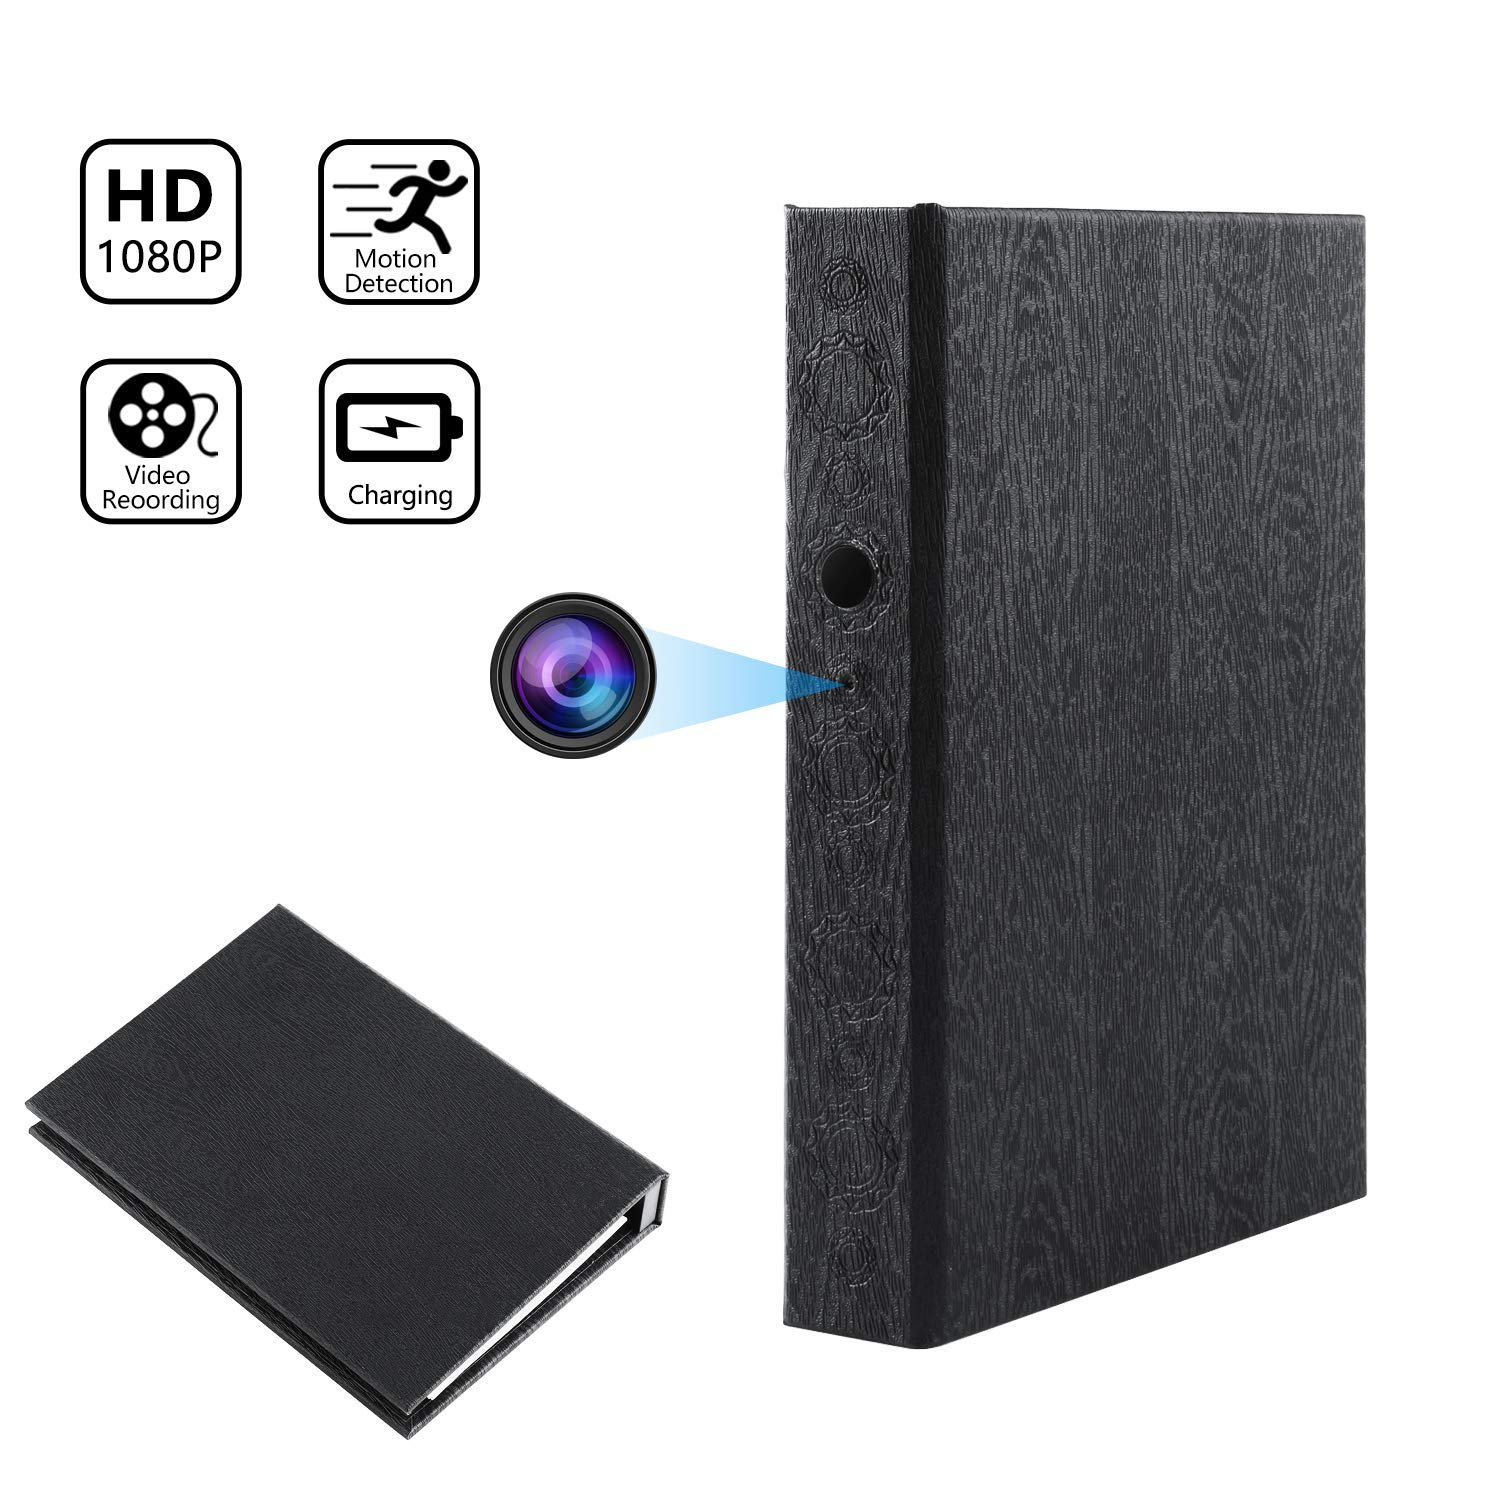 Hidden Camera Book Spy Camera HD 1080P Covert Nanny Cam Video Recorder for Home Security 10000mAh Battery Powered by SPOOKER